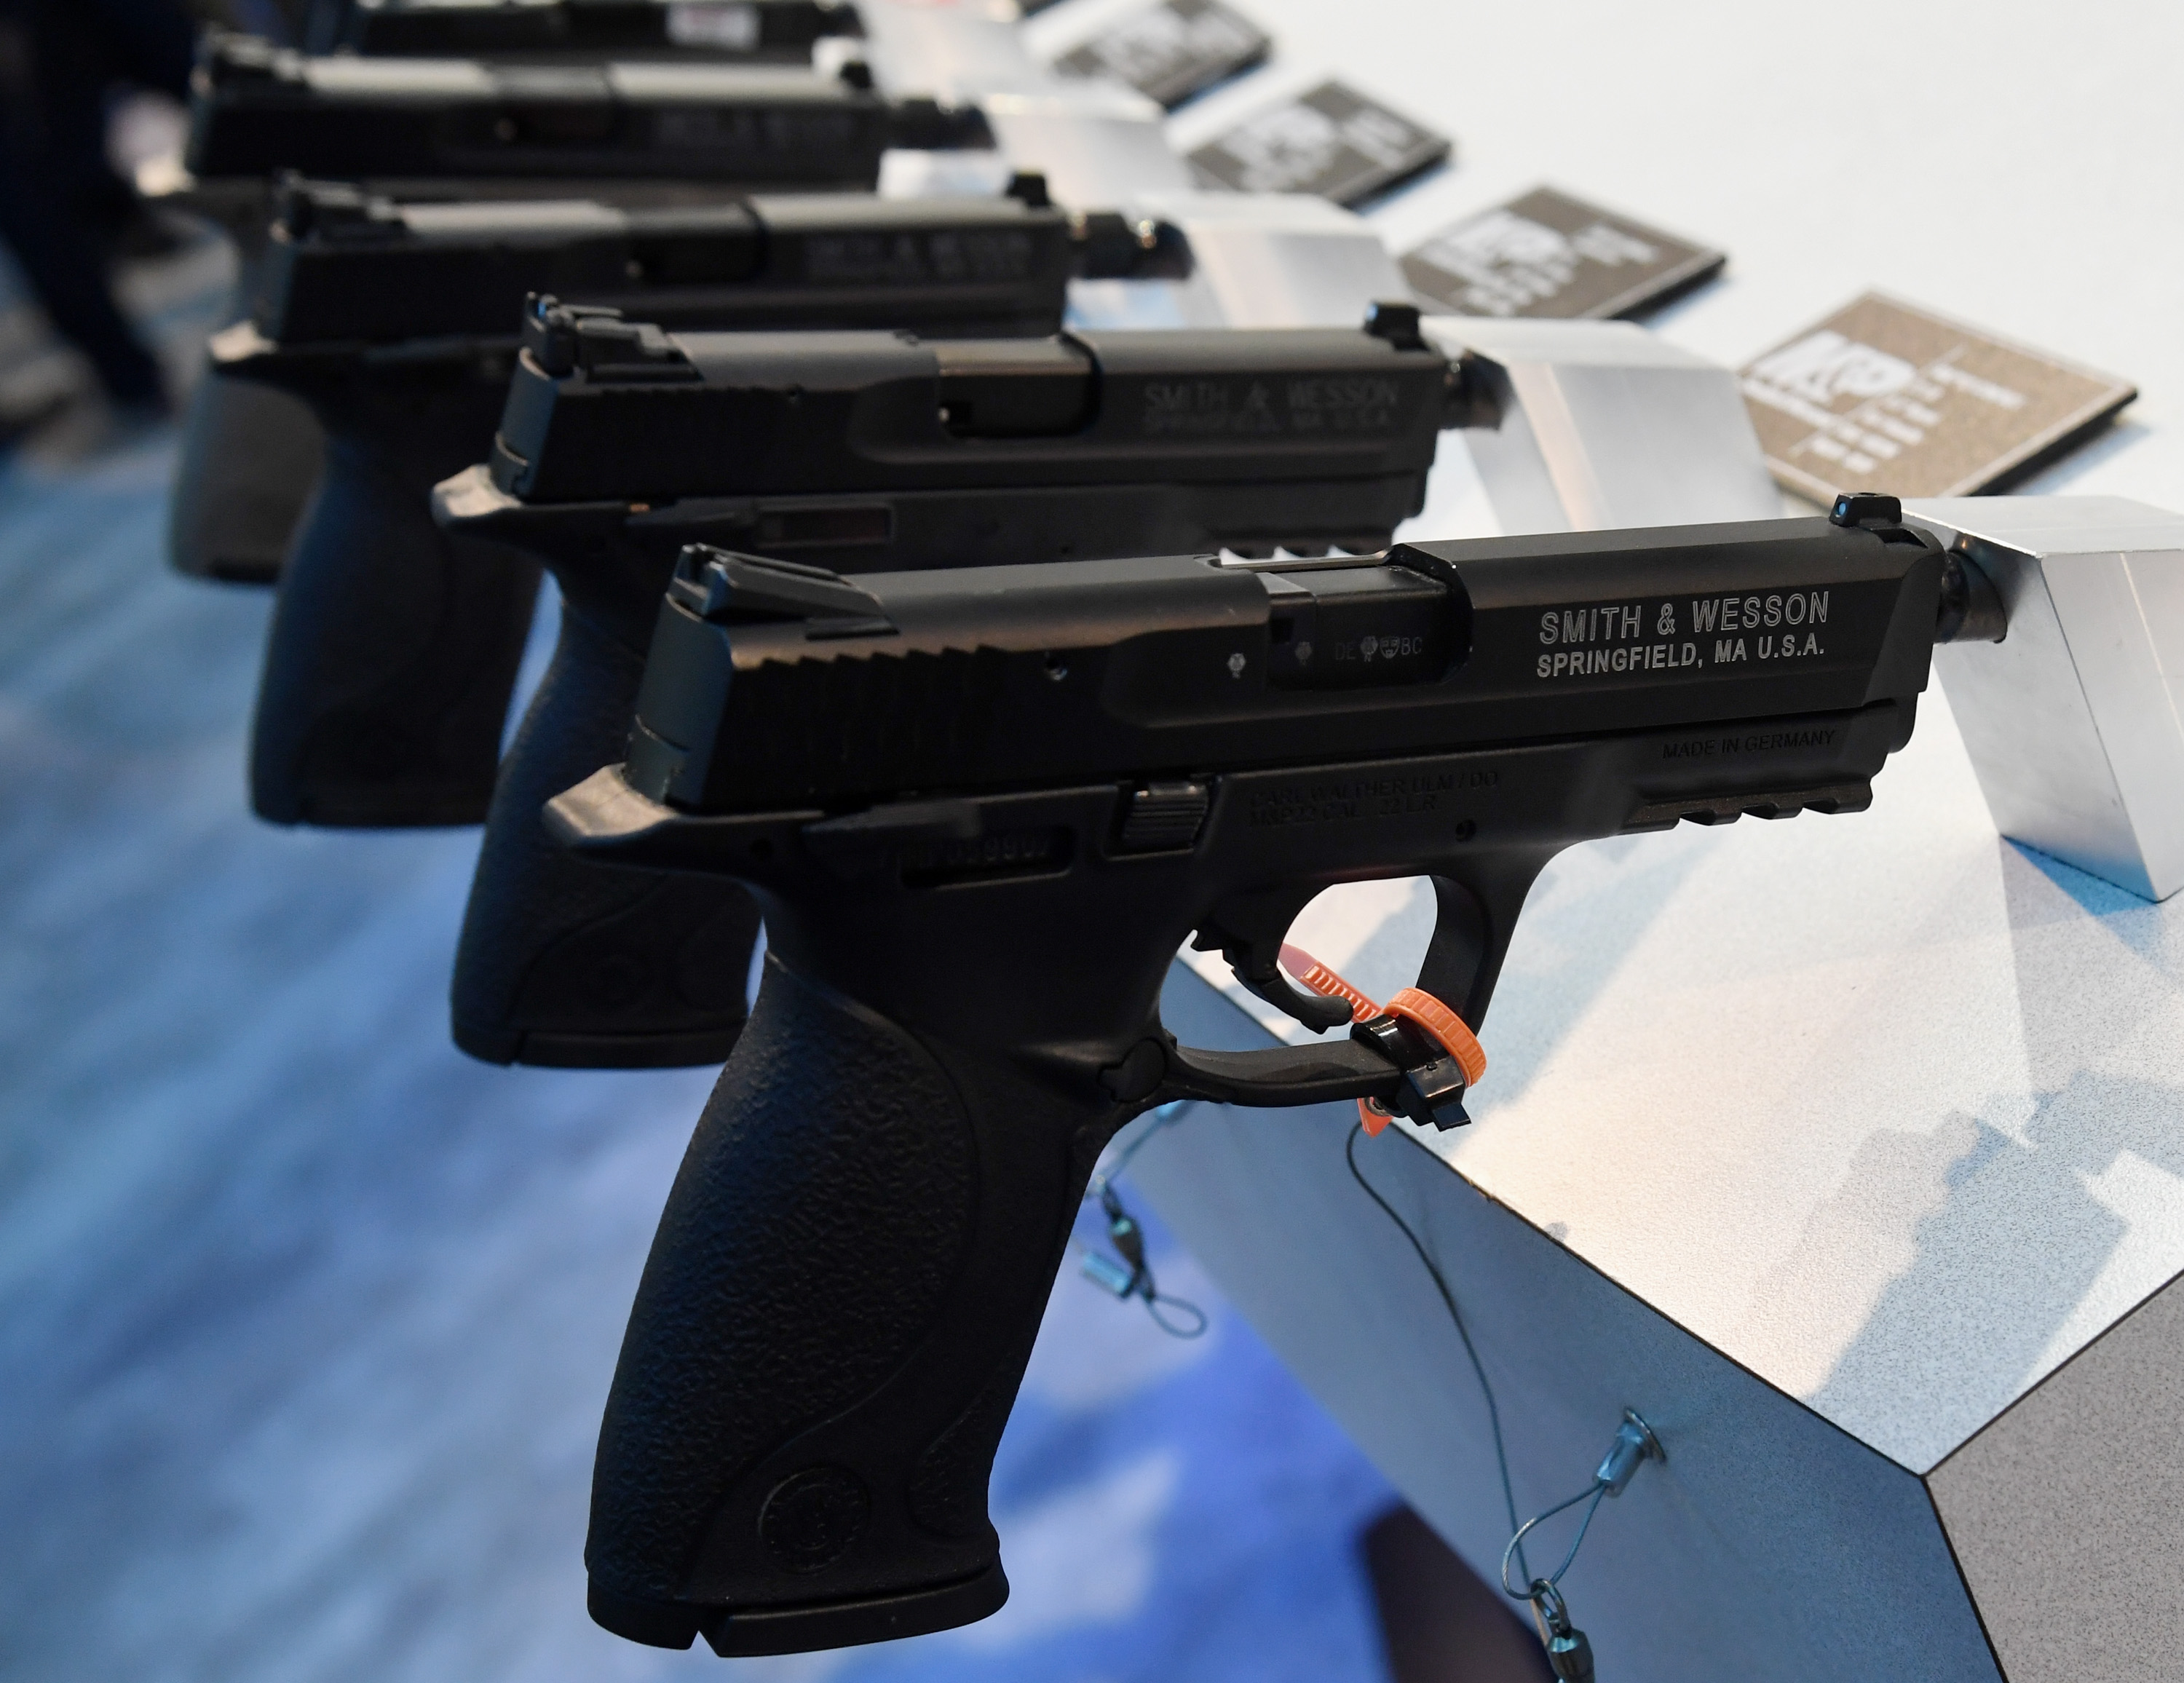 US firearms purchases skyrocket during pandemic, according to FBI records